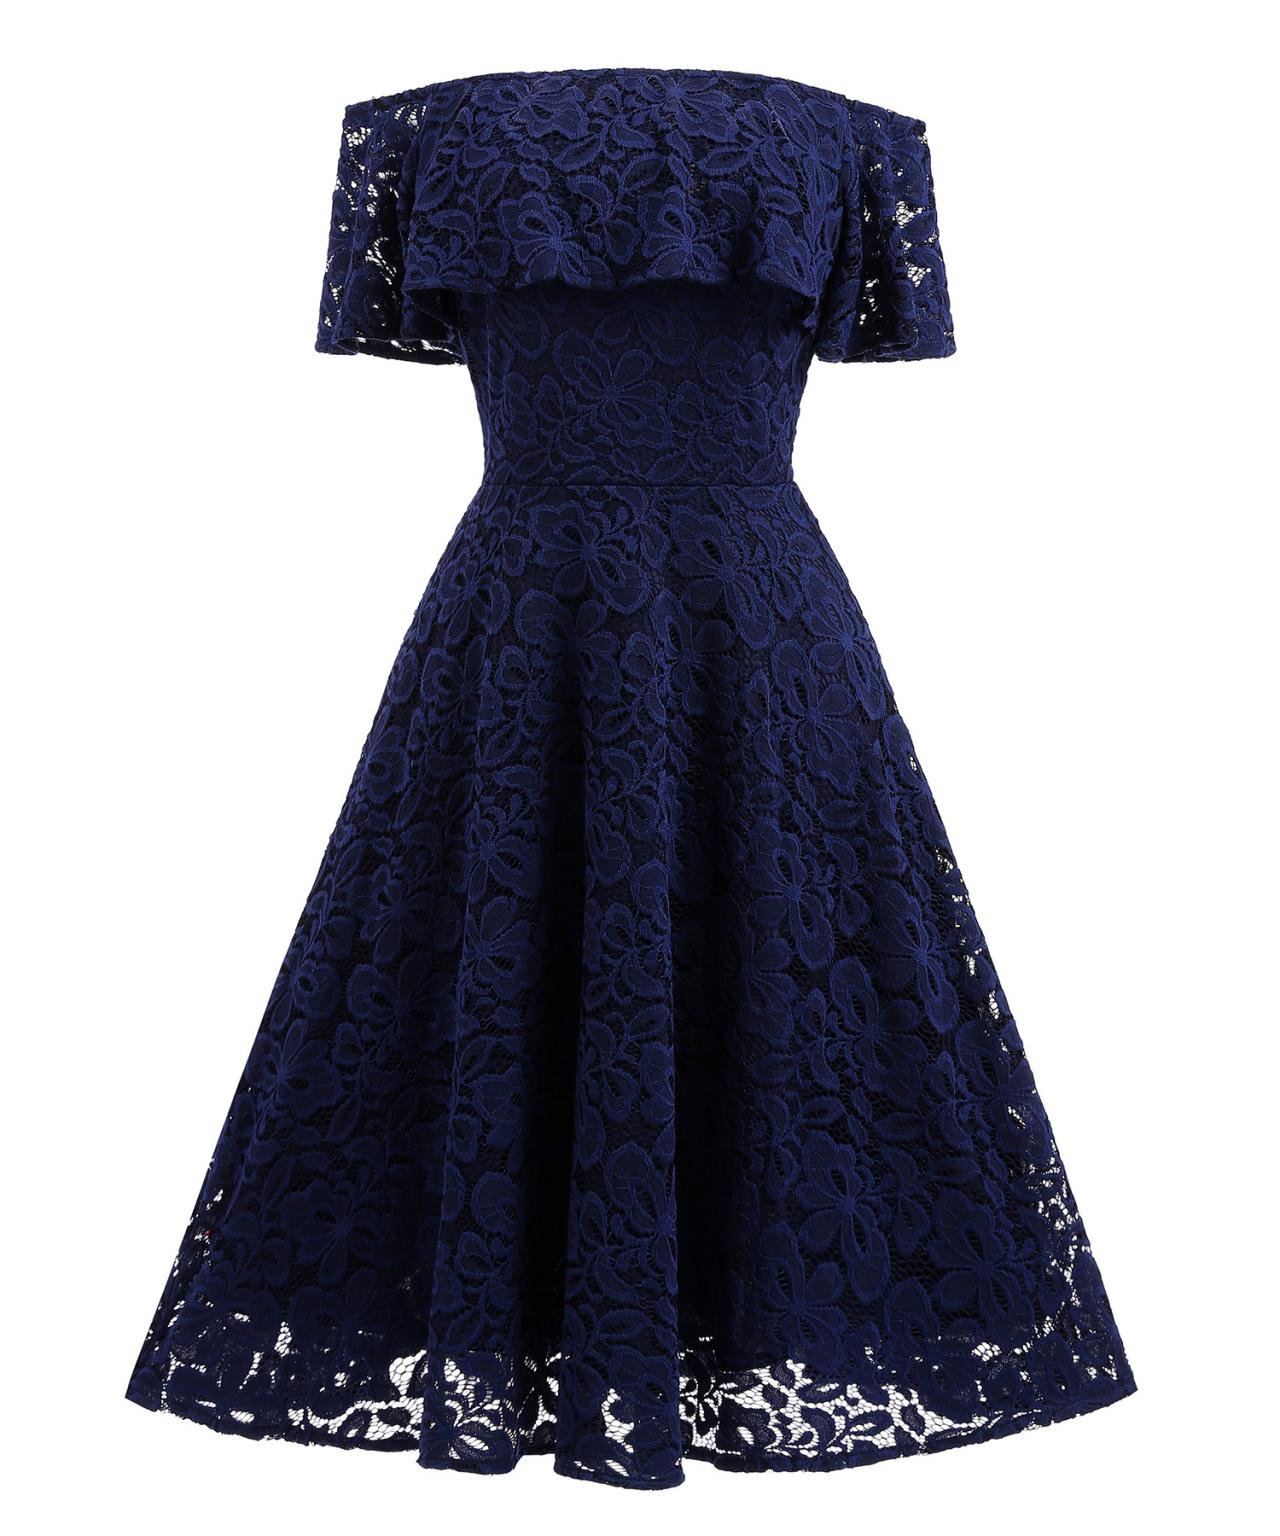 2c85240c8719 Navy Blue Short Soft Lace Prom Dress Off Shoulder Women Party Gowns ...